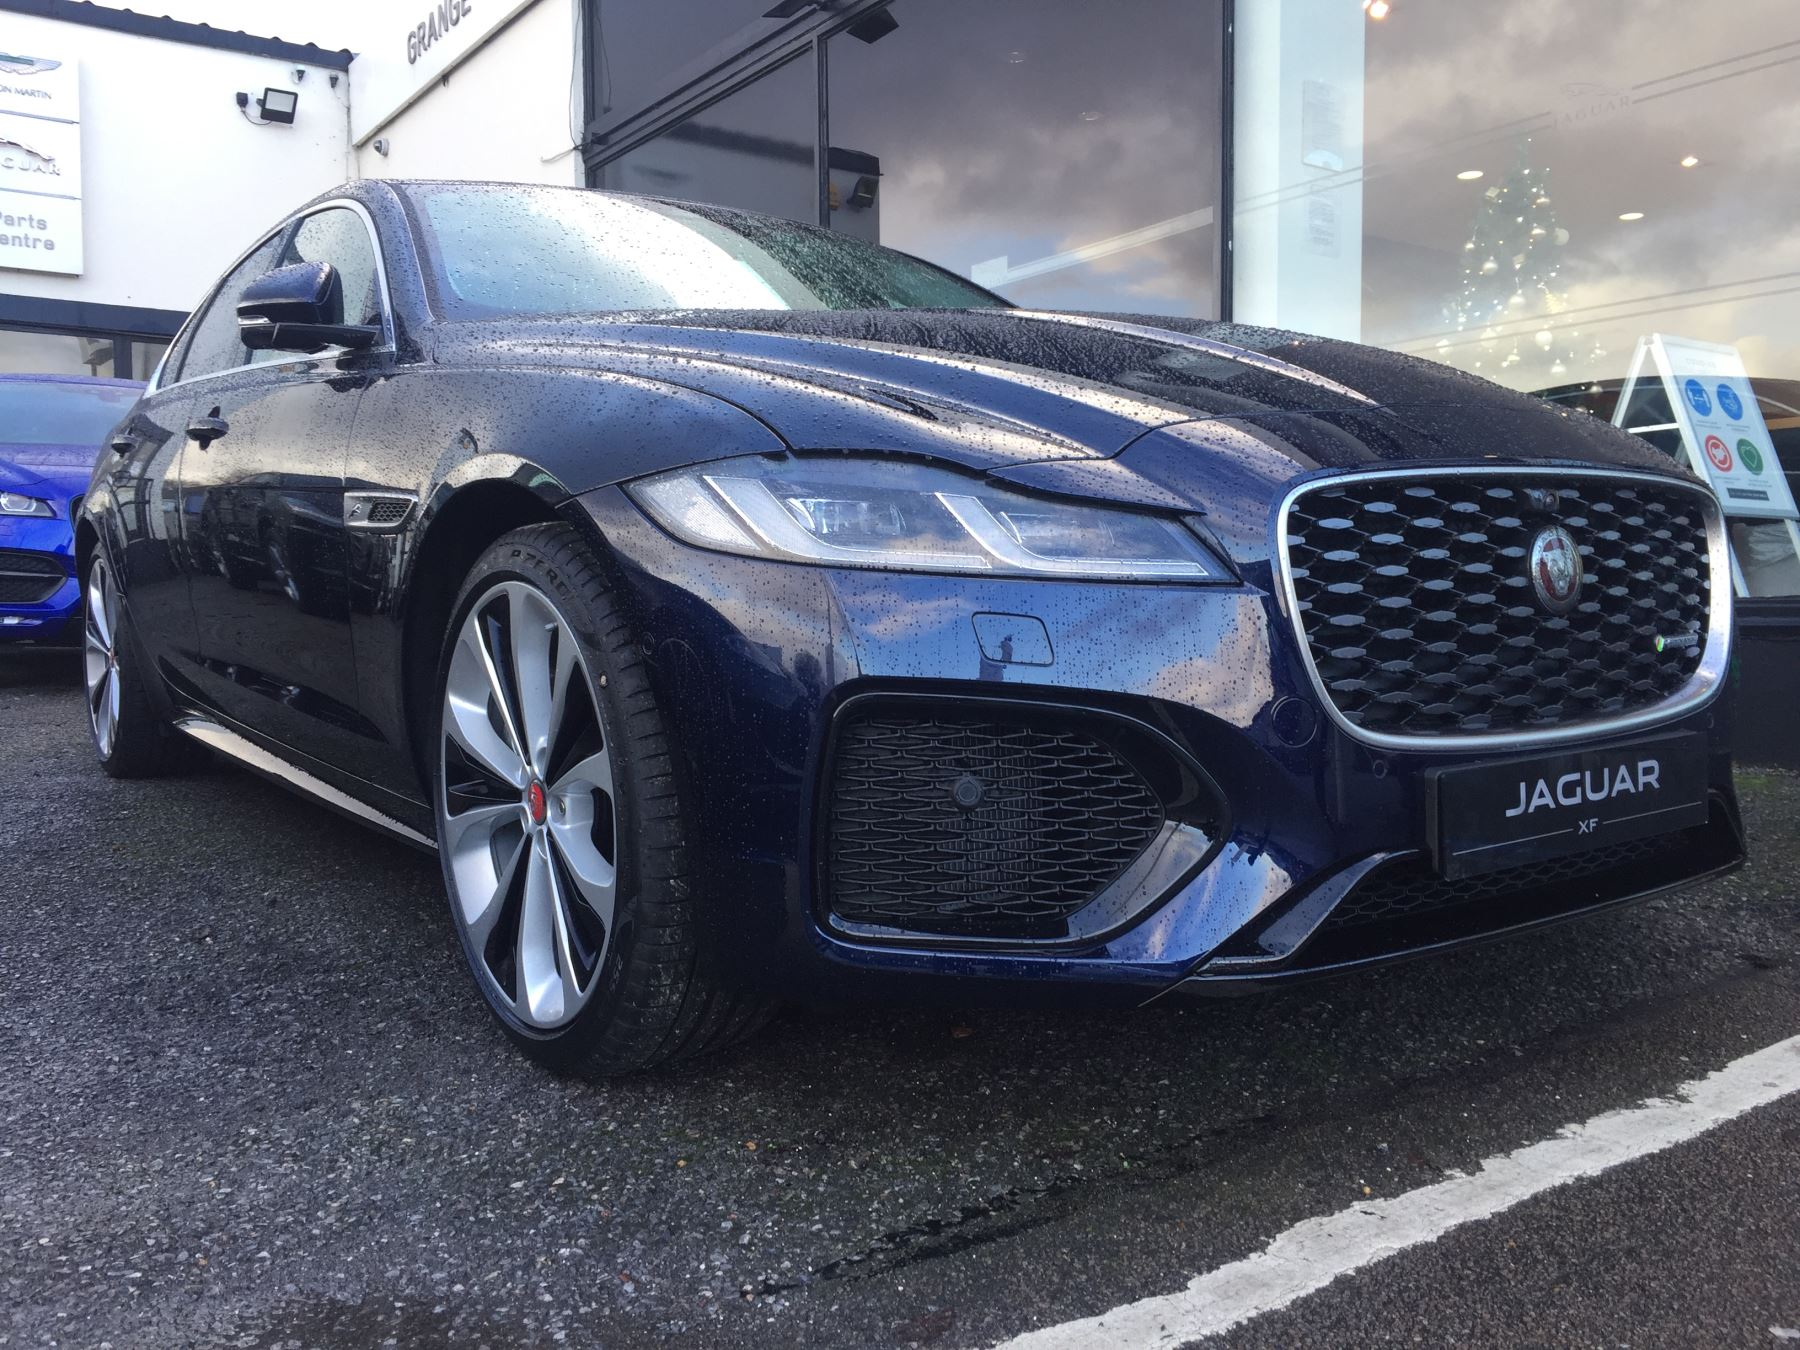 Jaguar XF 2.0 P250 R-Dynamic HSE Automatic 4 door Saloon